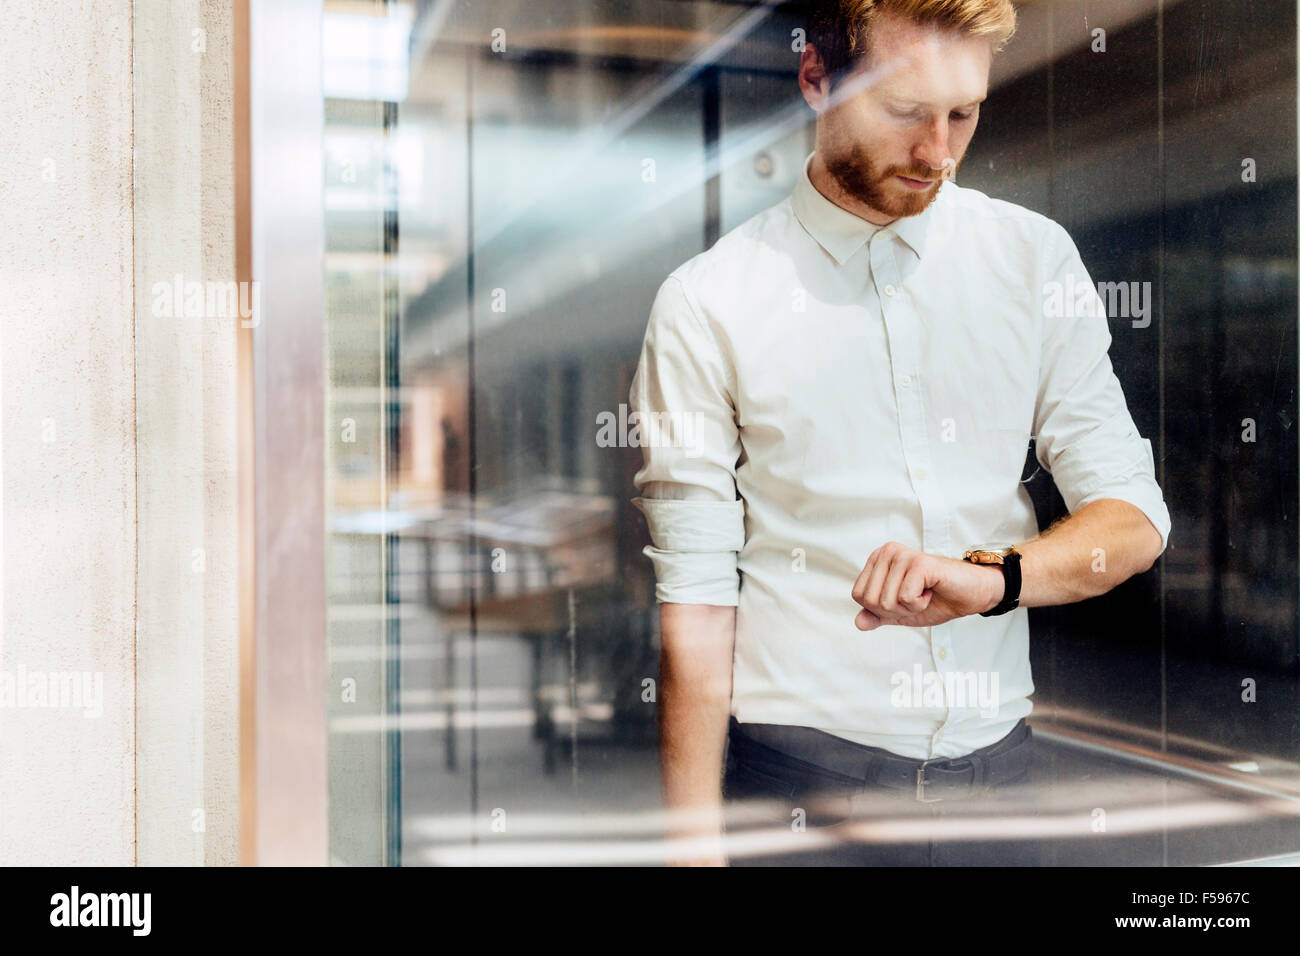 Businessman checking watch while standing in glass covered elevator - Stock Image